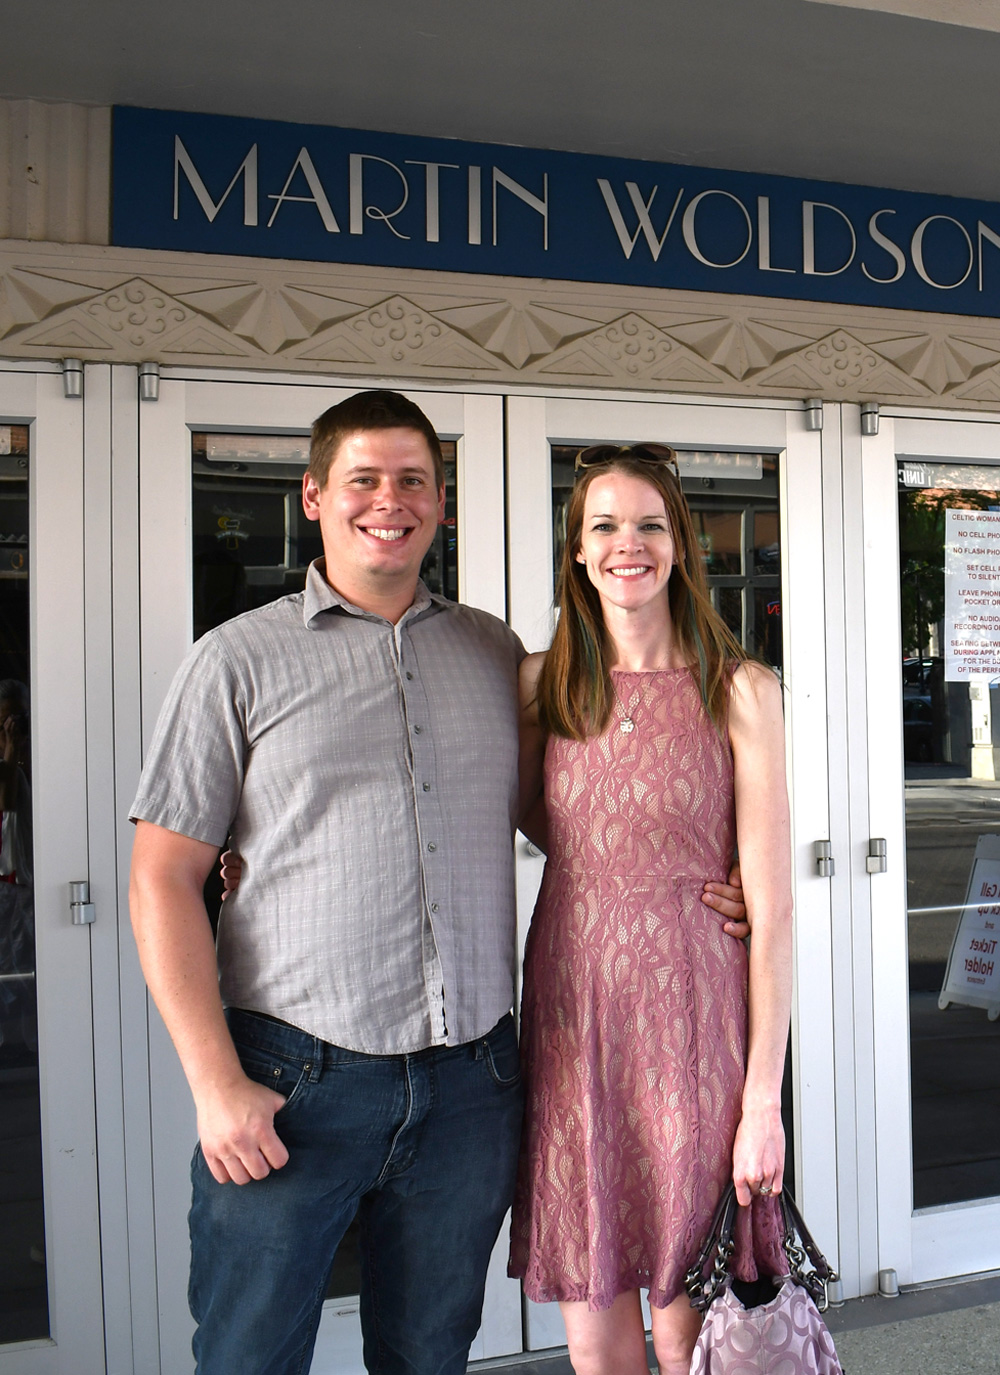 CELTIC WOMAN Ancient Land tour Martin Woldson Theater - Coeur d'Alene blogger Create Play Travel